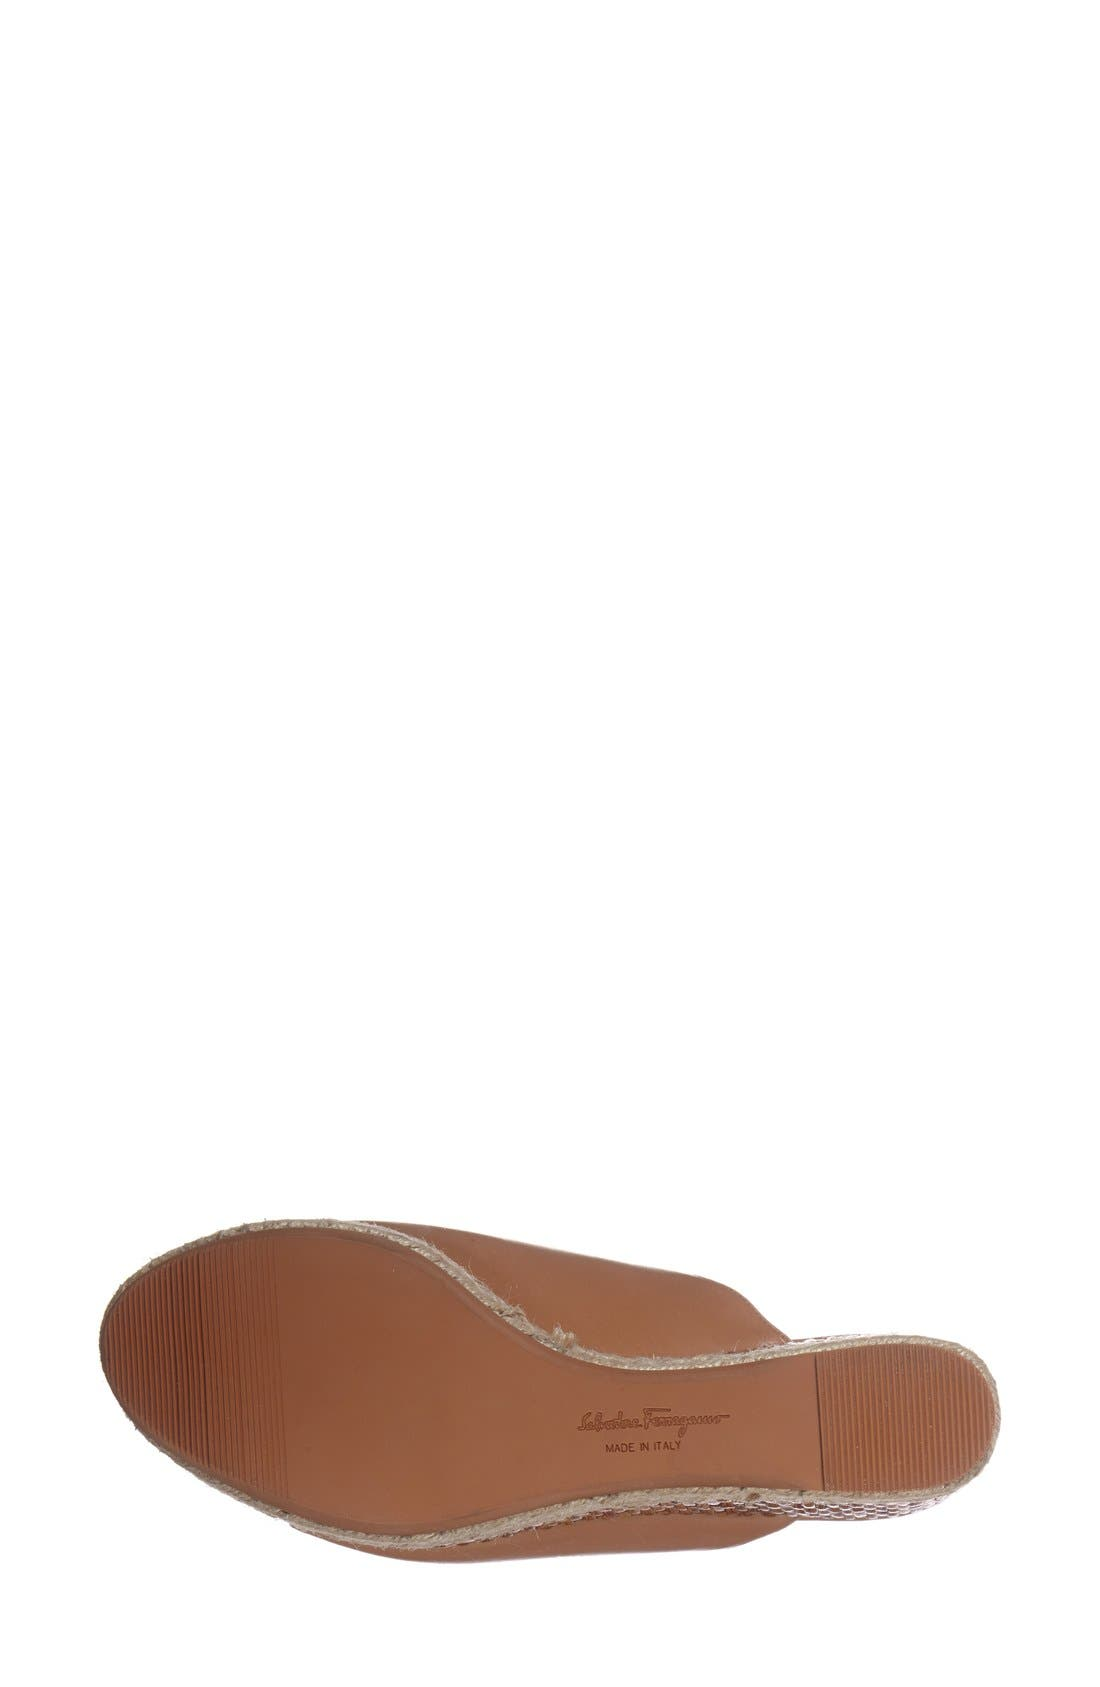 Alternate Image 4  - Salvatore Ferragamo 'Maimei' Wedge Sandal (Women)